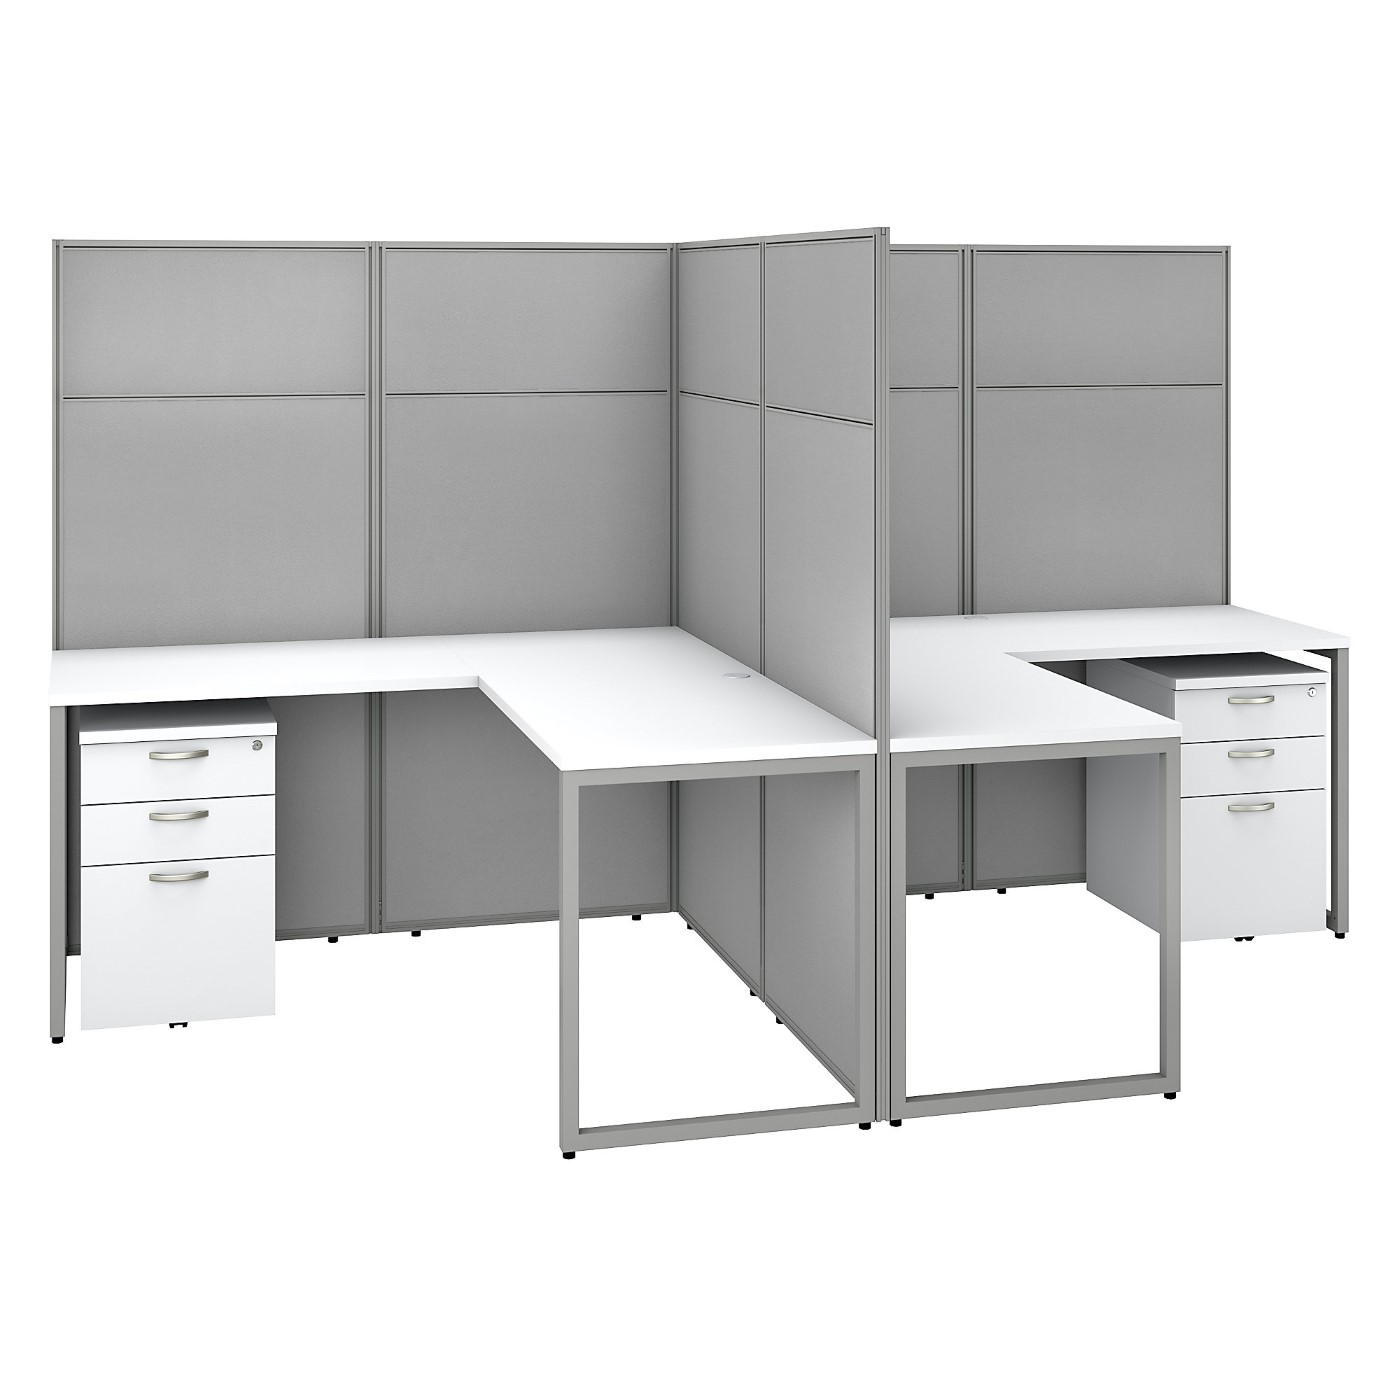 BUSH BUSINESS FURNITURE EASY OFFICE 60W 2 PERSON L SHAPED CUBICLE DESK WITH DRAWERS AND 66H PANELS. FREE SHIPPING SALE DEDUCT 10% MORE ENTER '10percent' IN COUPON CODE BOX WHILE CHECKING OUT. ENDS 5-31-20.